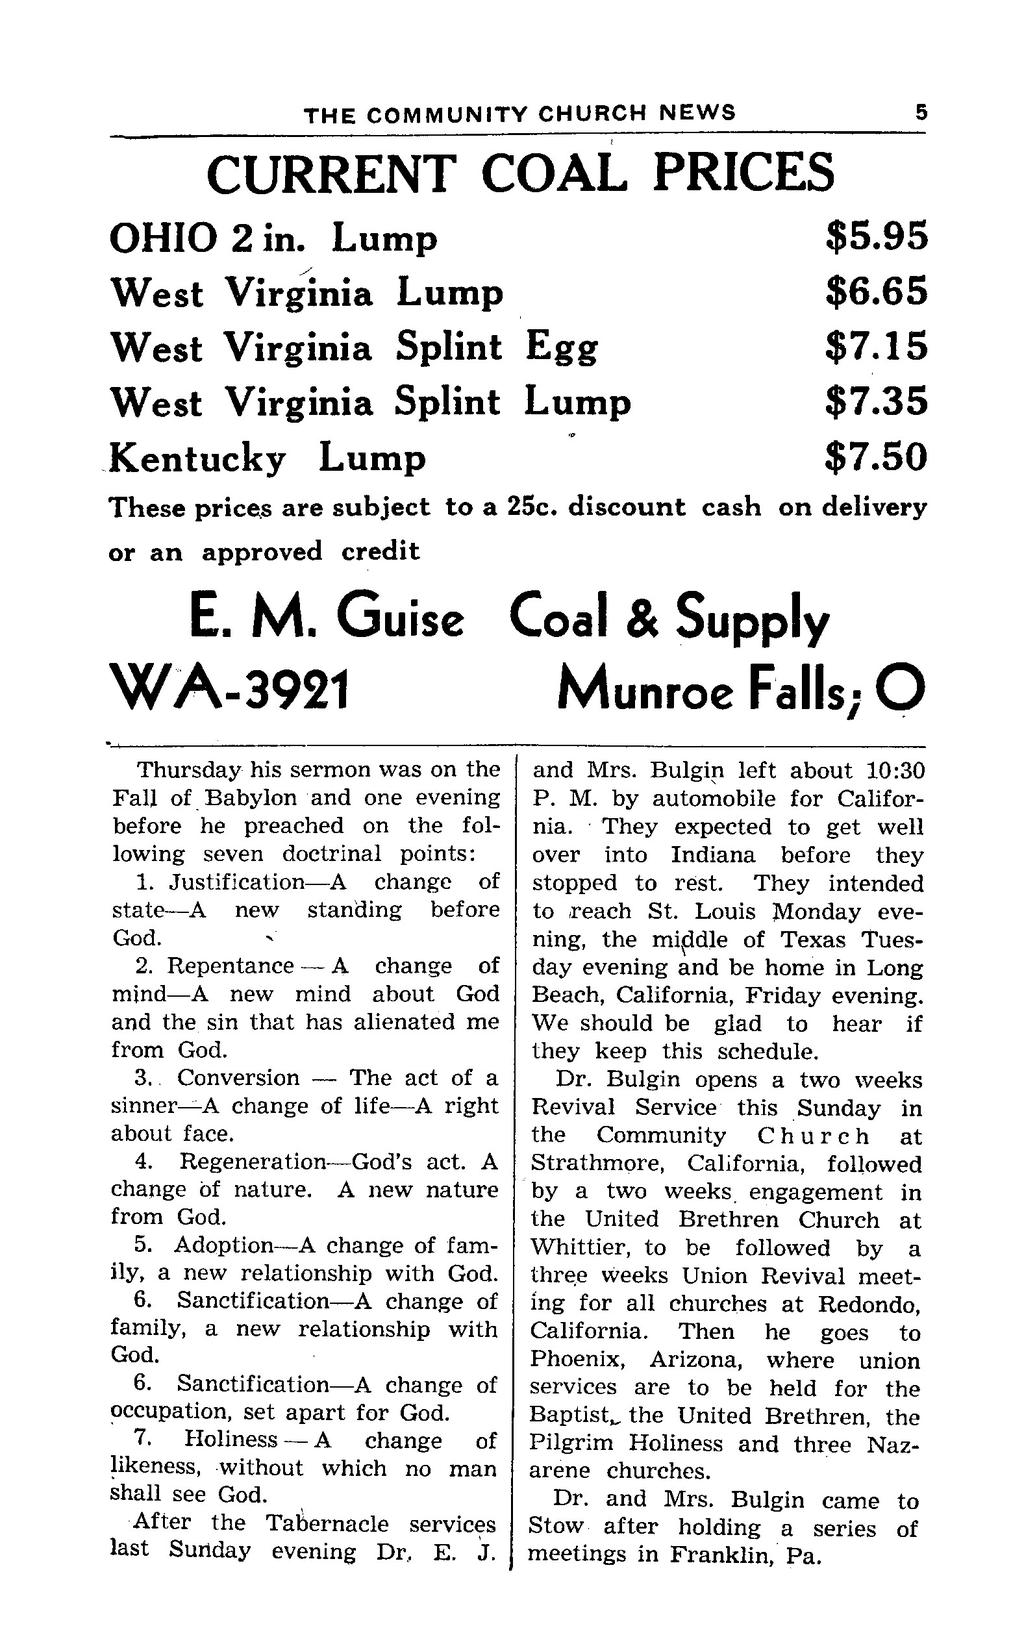 3 8 THE COIWNIUNITY CHURCH NEWS CURRENT COAL PRICES OHIO 2 in. Lump $5.95 West Virginia Lump $6.65 West Virginia Splint Egg $7.15 West Virginia Splint Lump $7.35 Kentucky Lump $7.